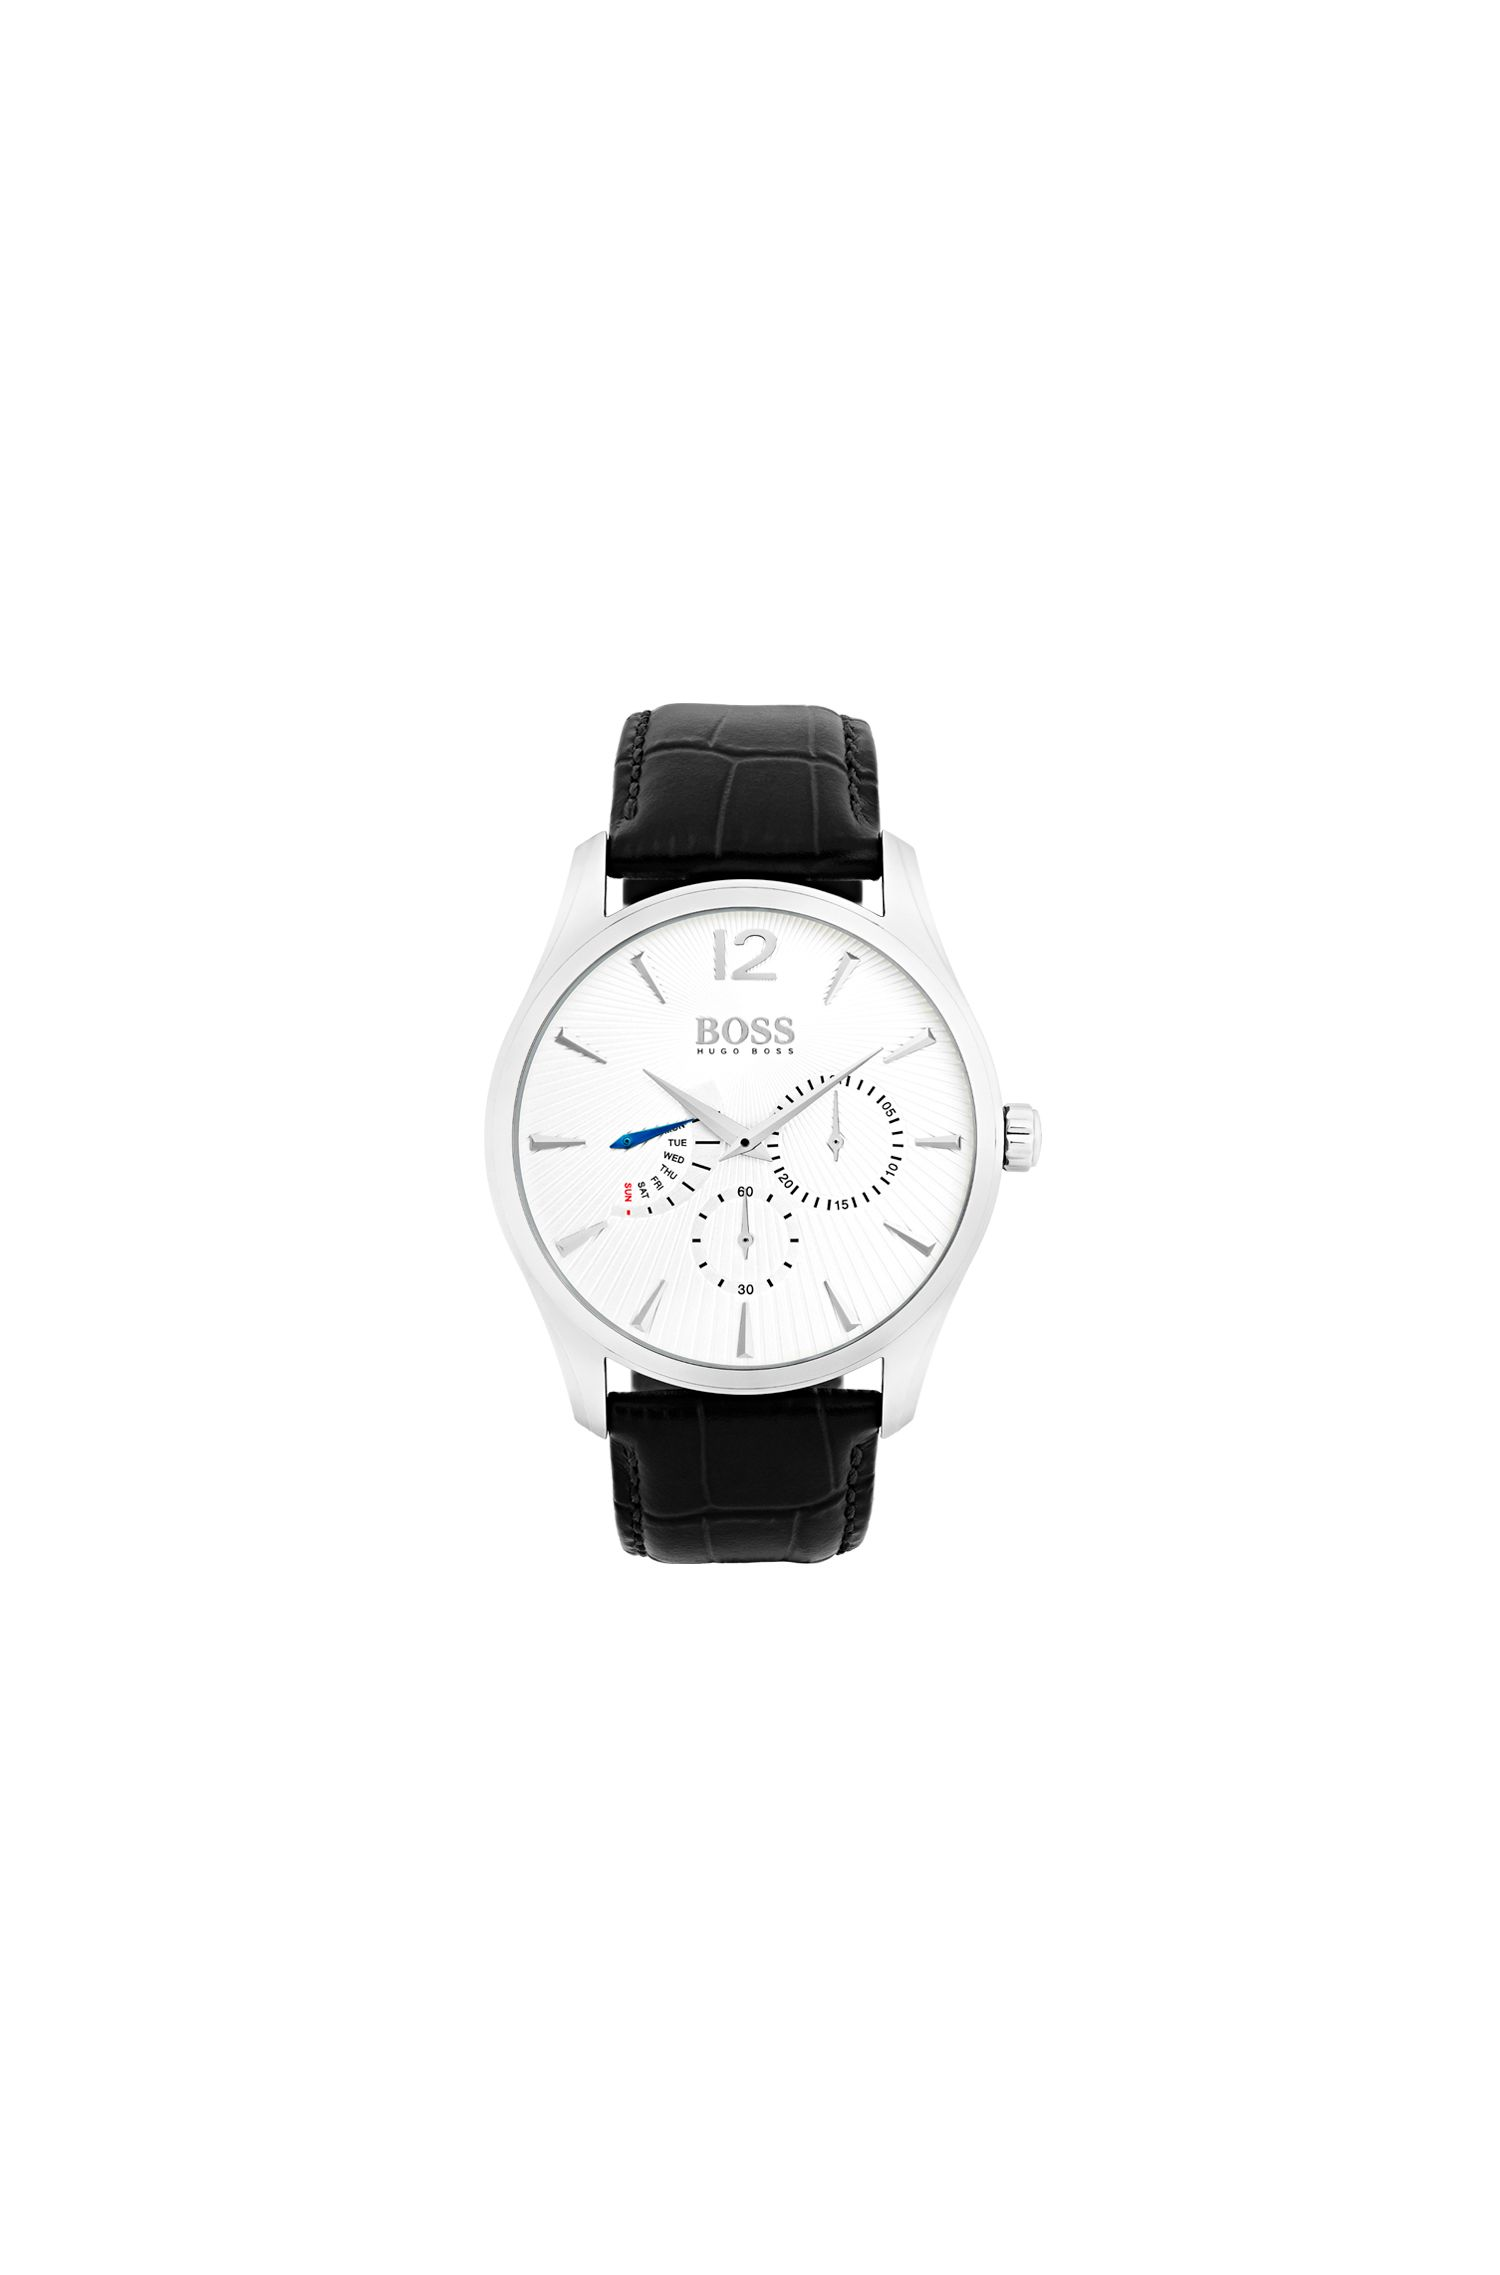 Two-hand watch in stainless steel with leather strap